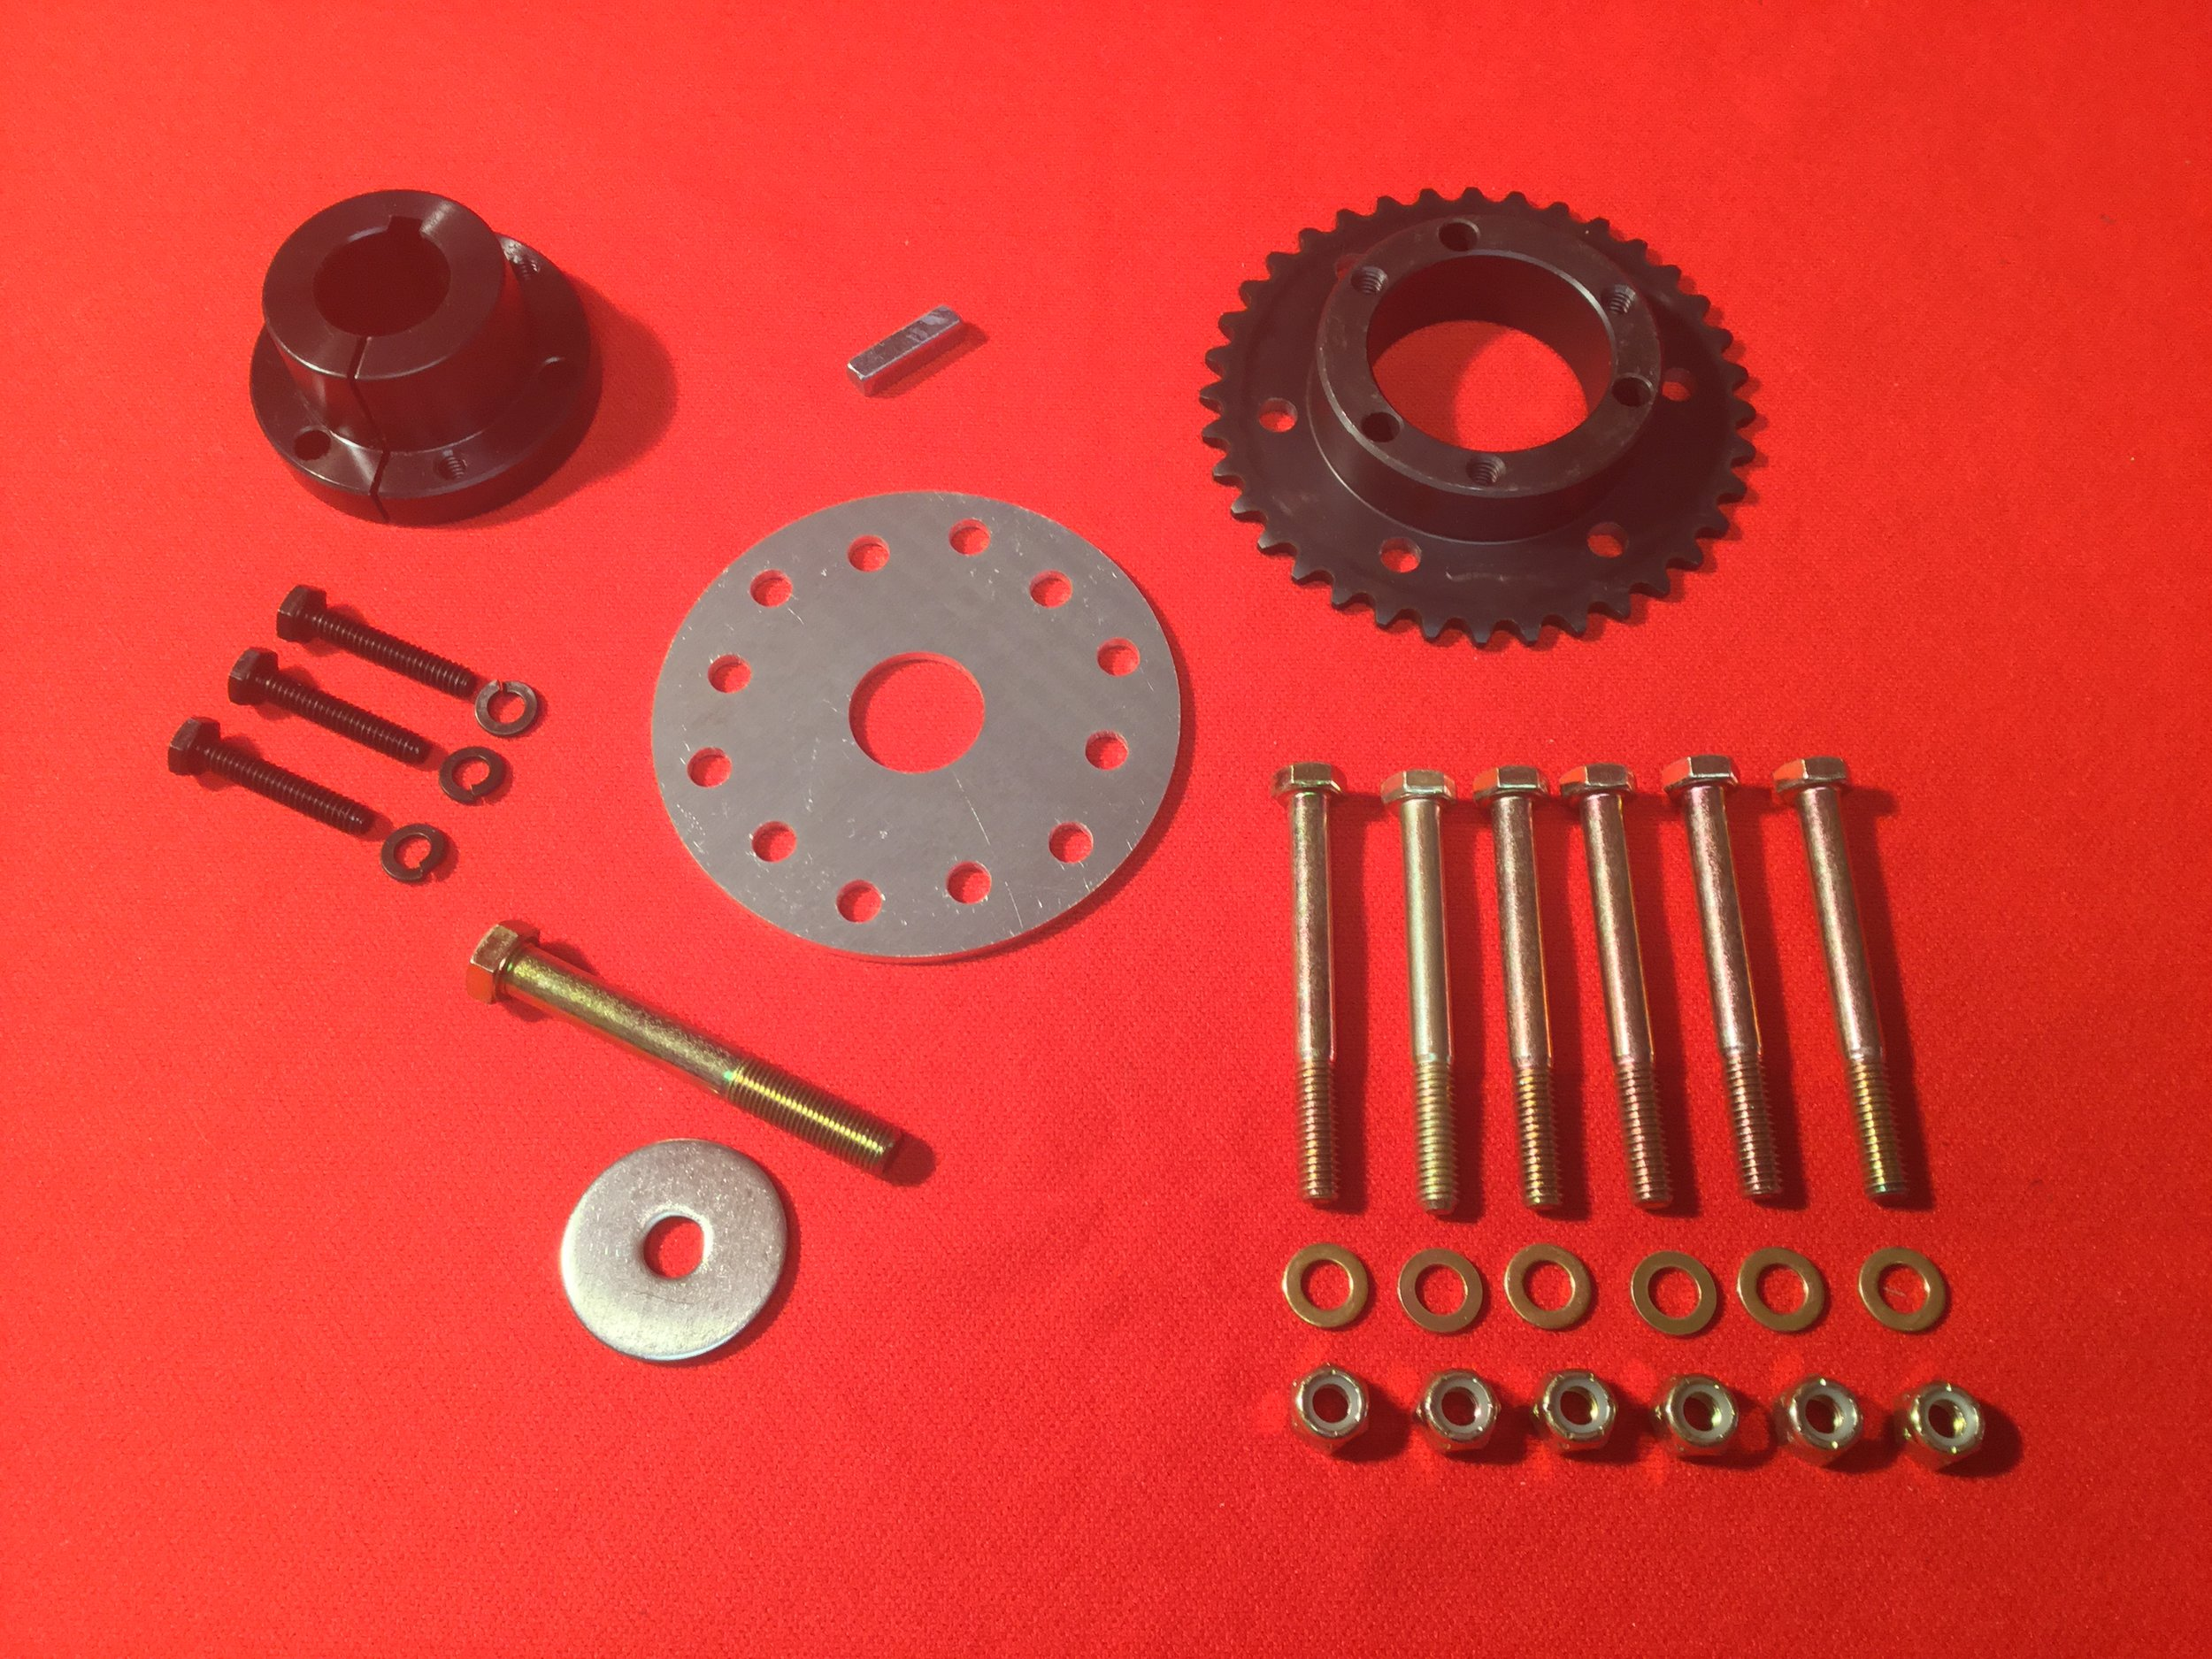 """Prop Flange Kit - Kit includes a taper lock bushing and matching modified sprocket to provide the interface between keyed, straight shaft small gas engines and the Ultra-Prop. Also provided is a """"crush"""" or backing plate, mounting hardware and key. Available for shaft sizes from 3/4"""